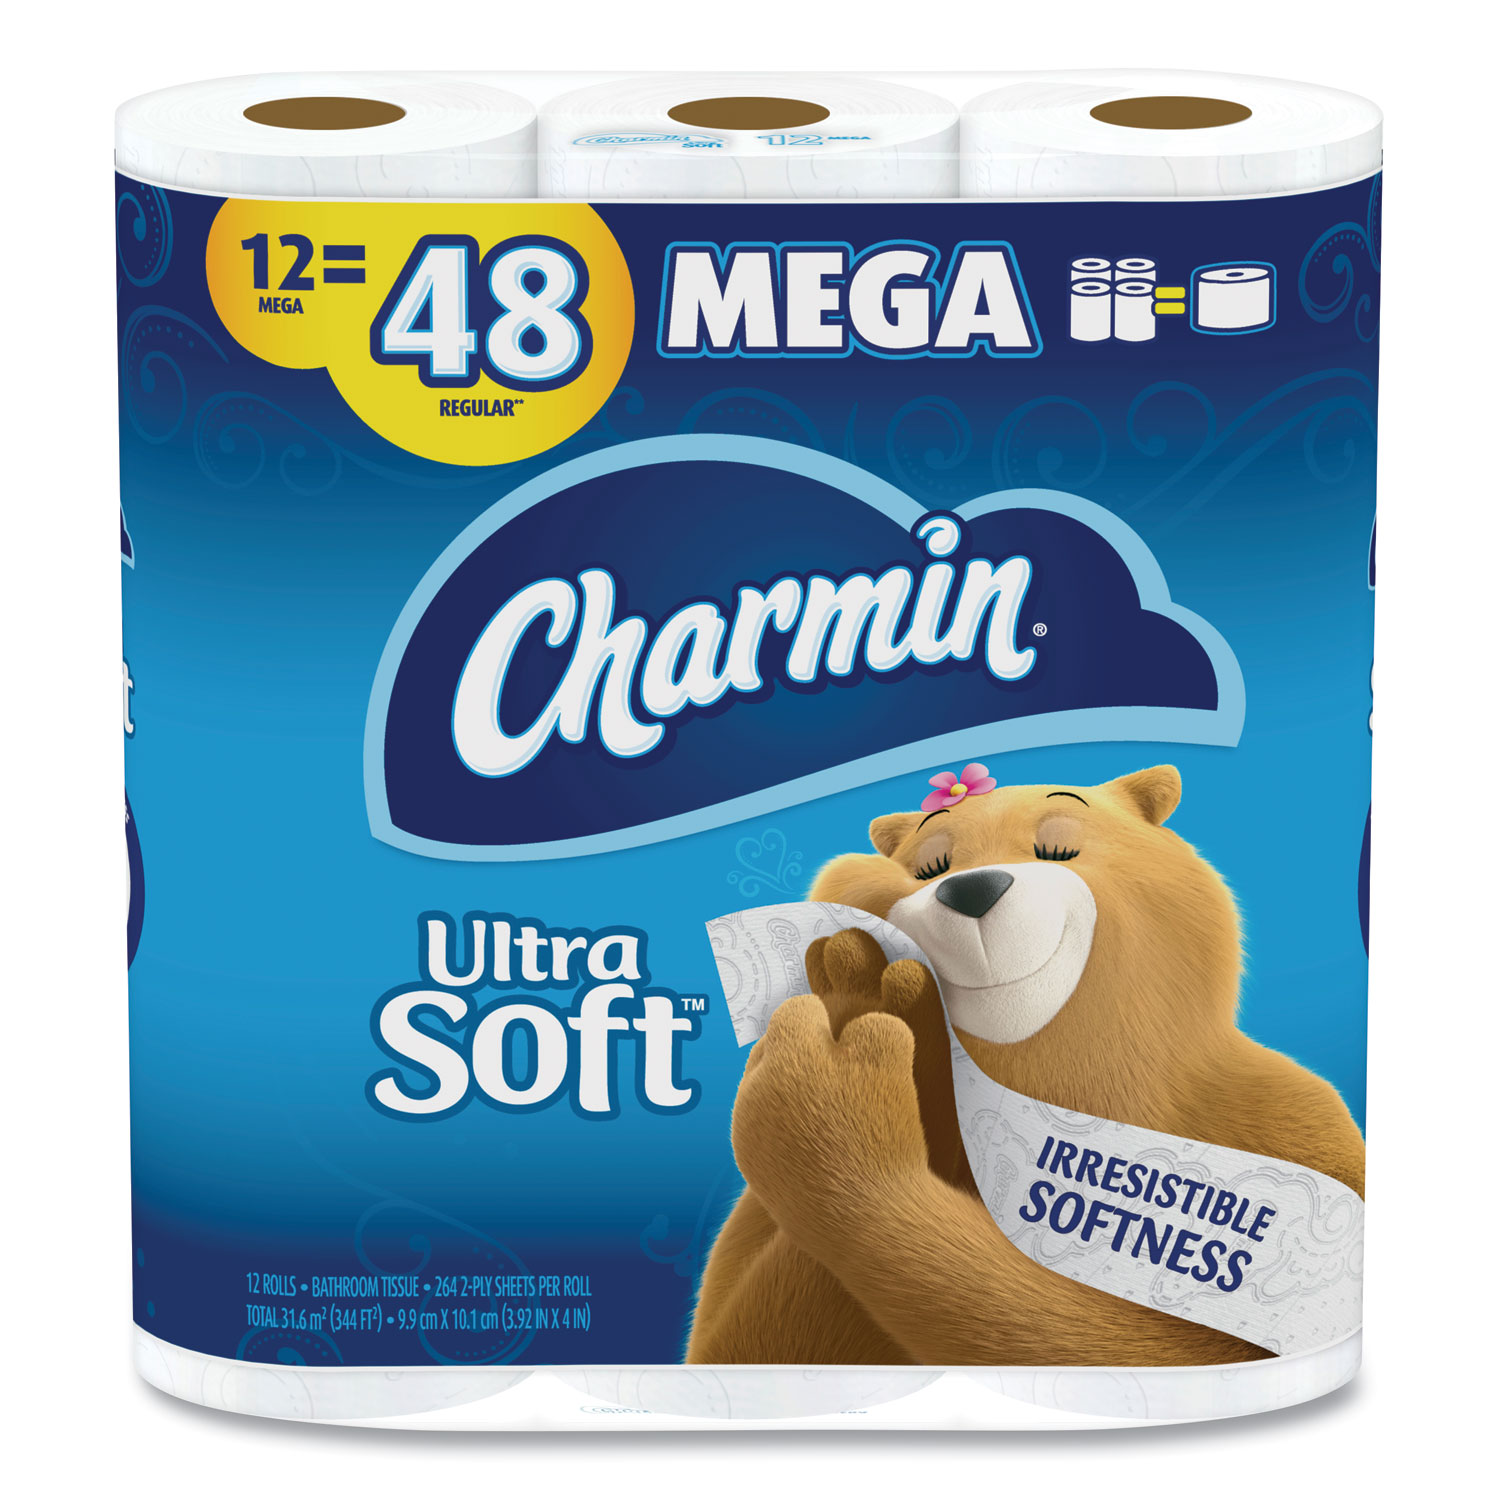 Charmin® Ultra Soft Bathroom Tissue, Septic Safe, 2-Ply, White, 4 x 3.92, 264 Sheets/Roll, 12 Rolls/Pack